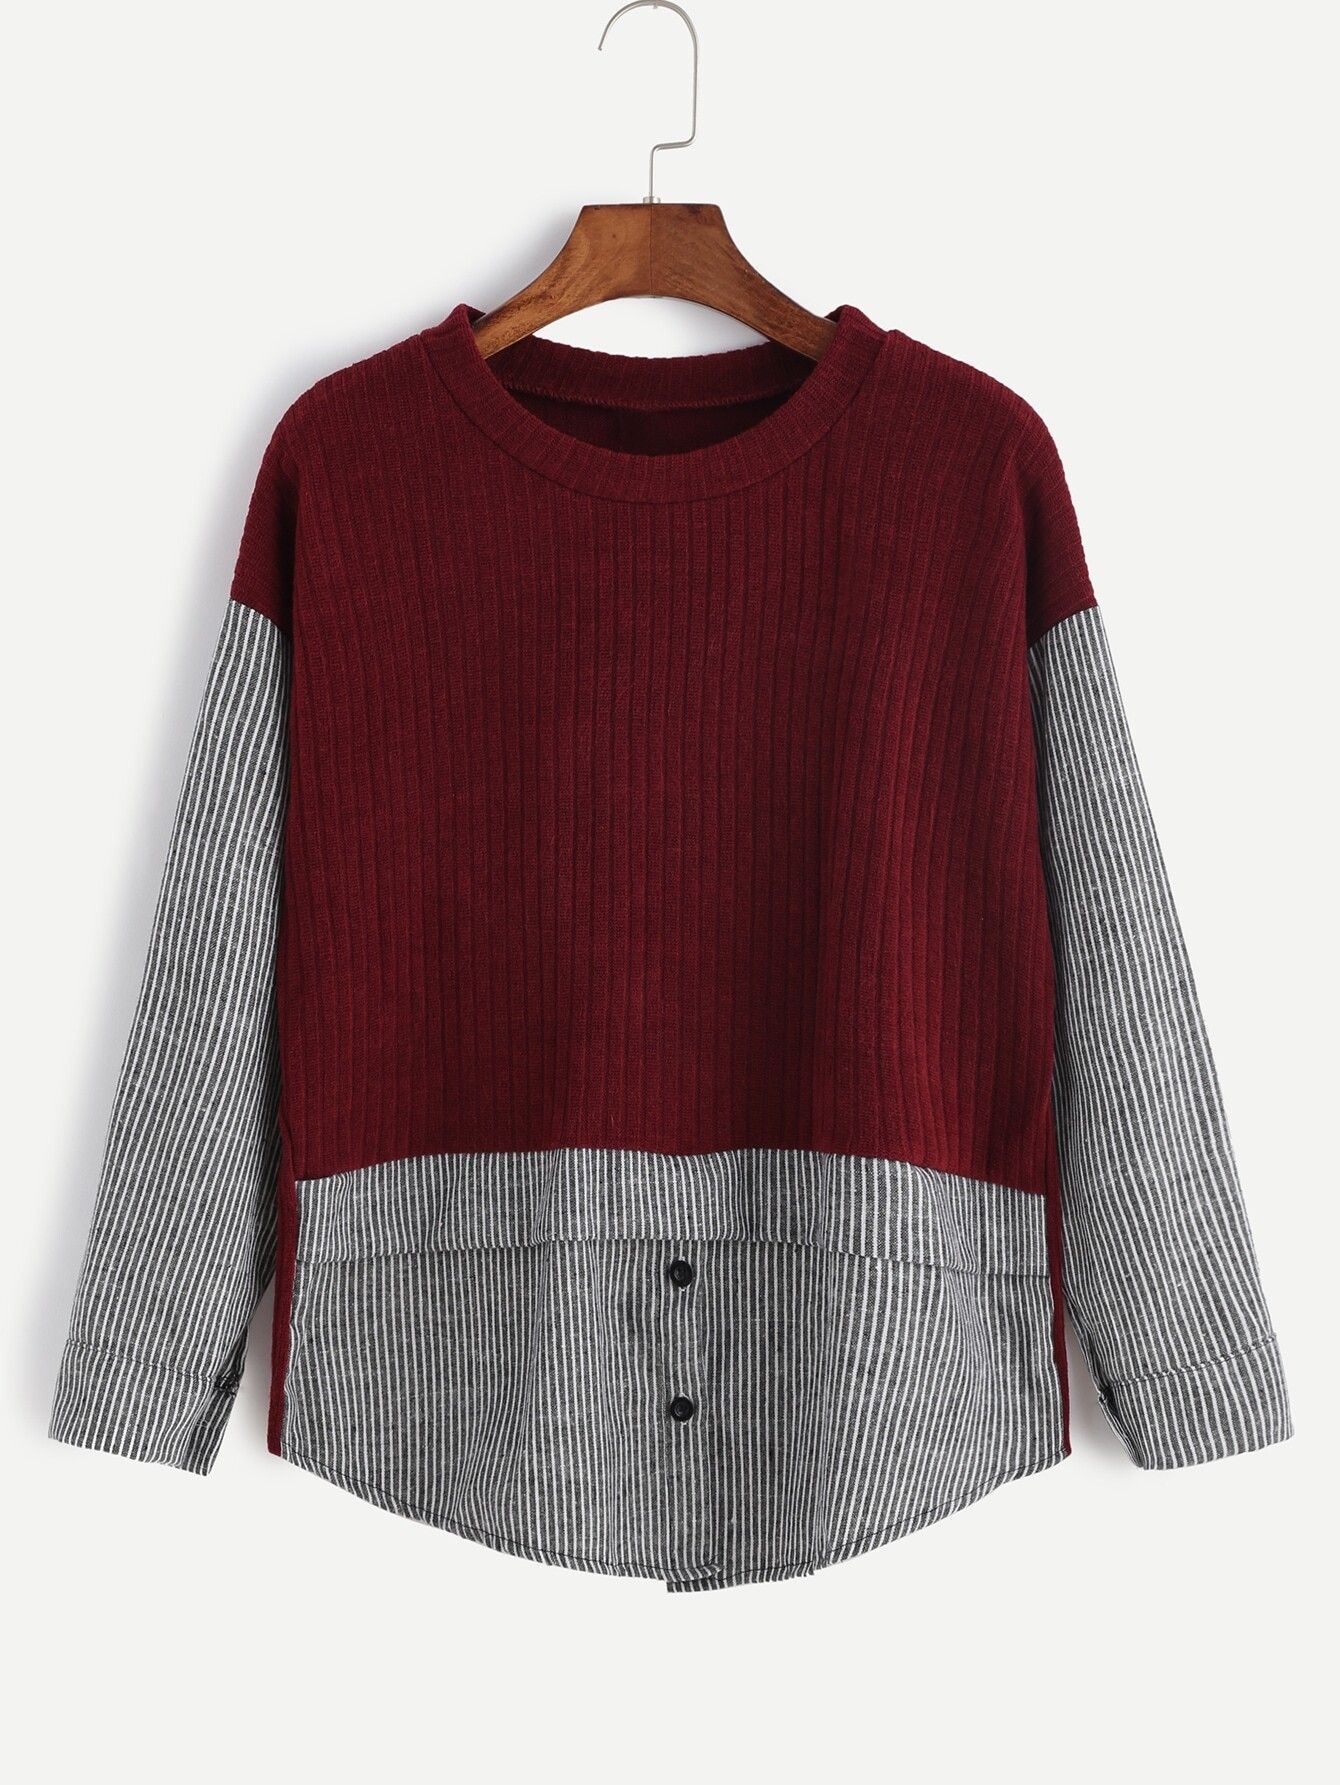 Burgundy Contrast Striped Ribbed Knit Sweater With Button Detail